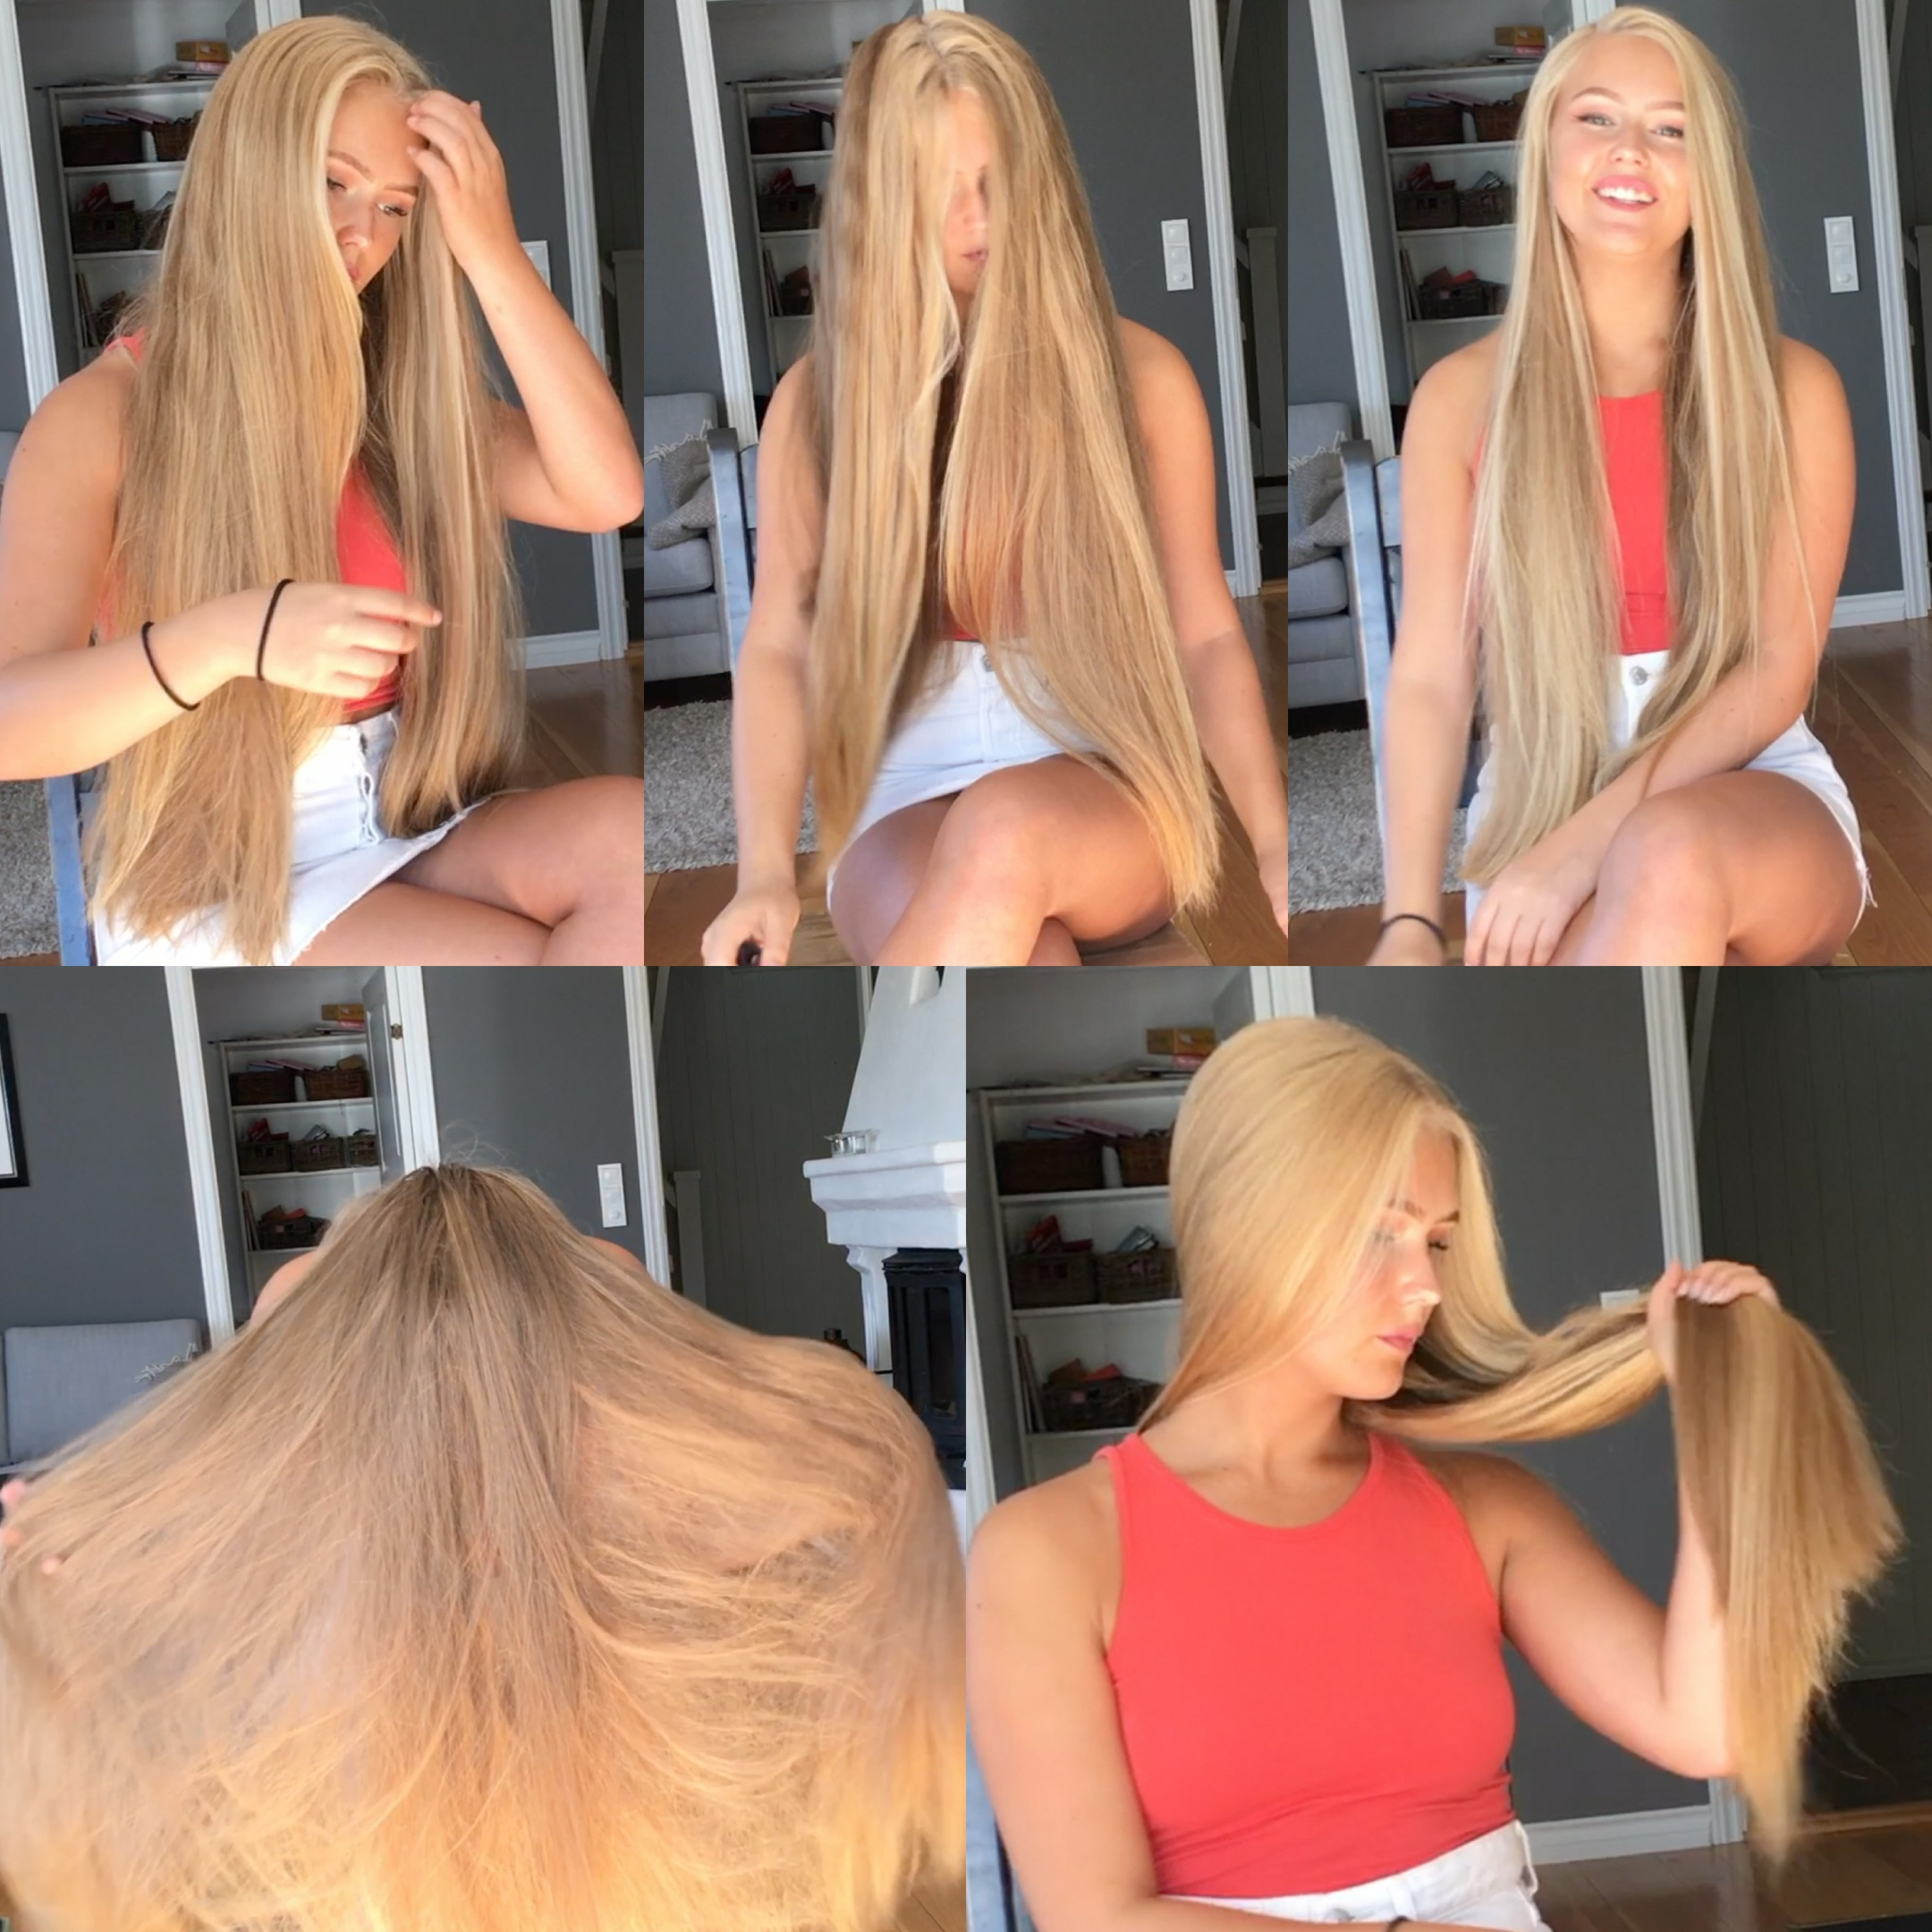 VIDEO - Top quality hair 5 - Blonde perfection